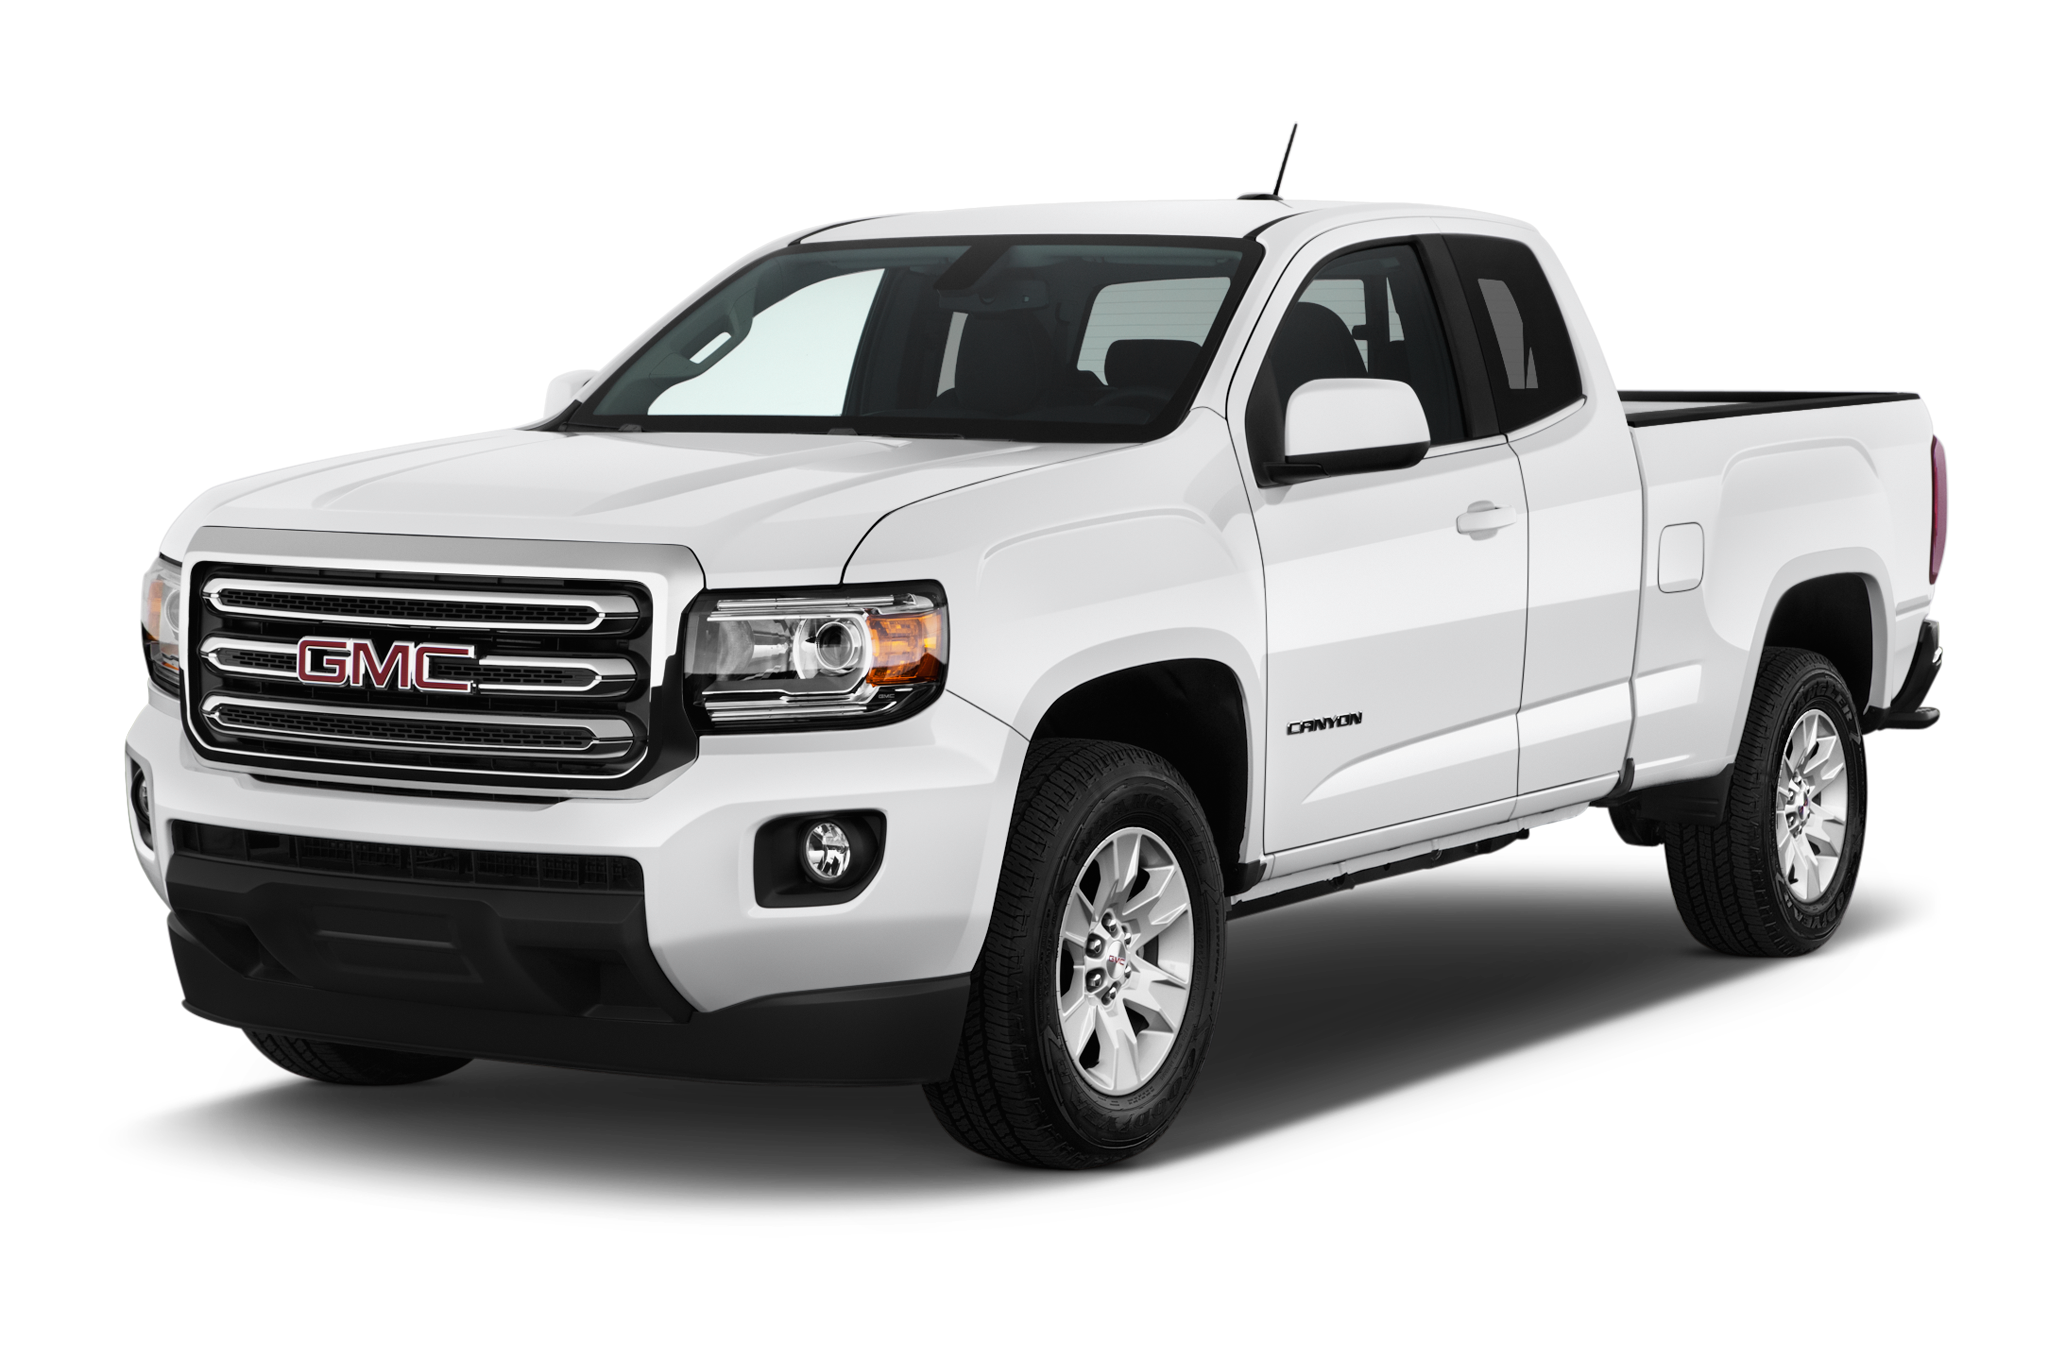 2017 GMC Canyon 2WD Base Extended Cab Specs and Features - MSN Autos